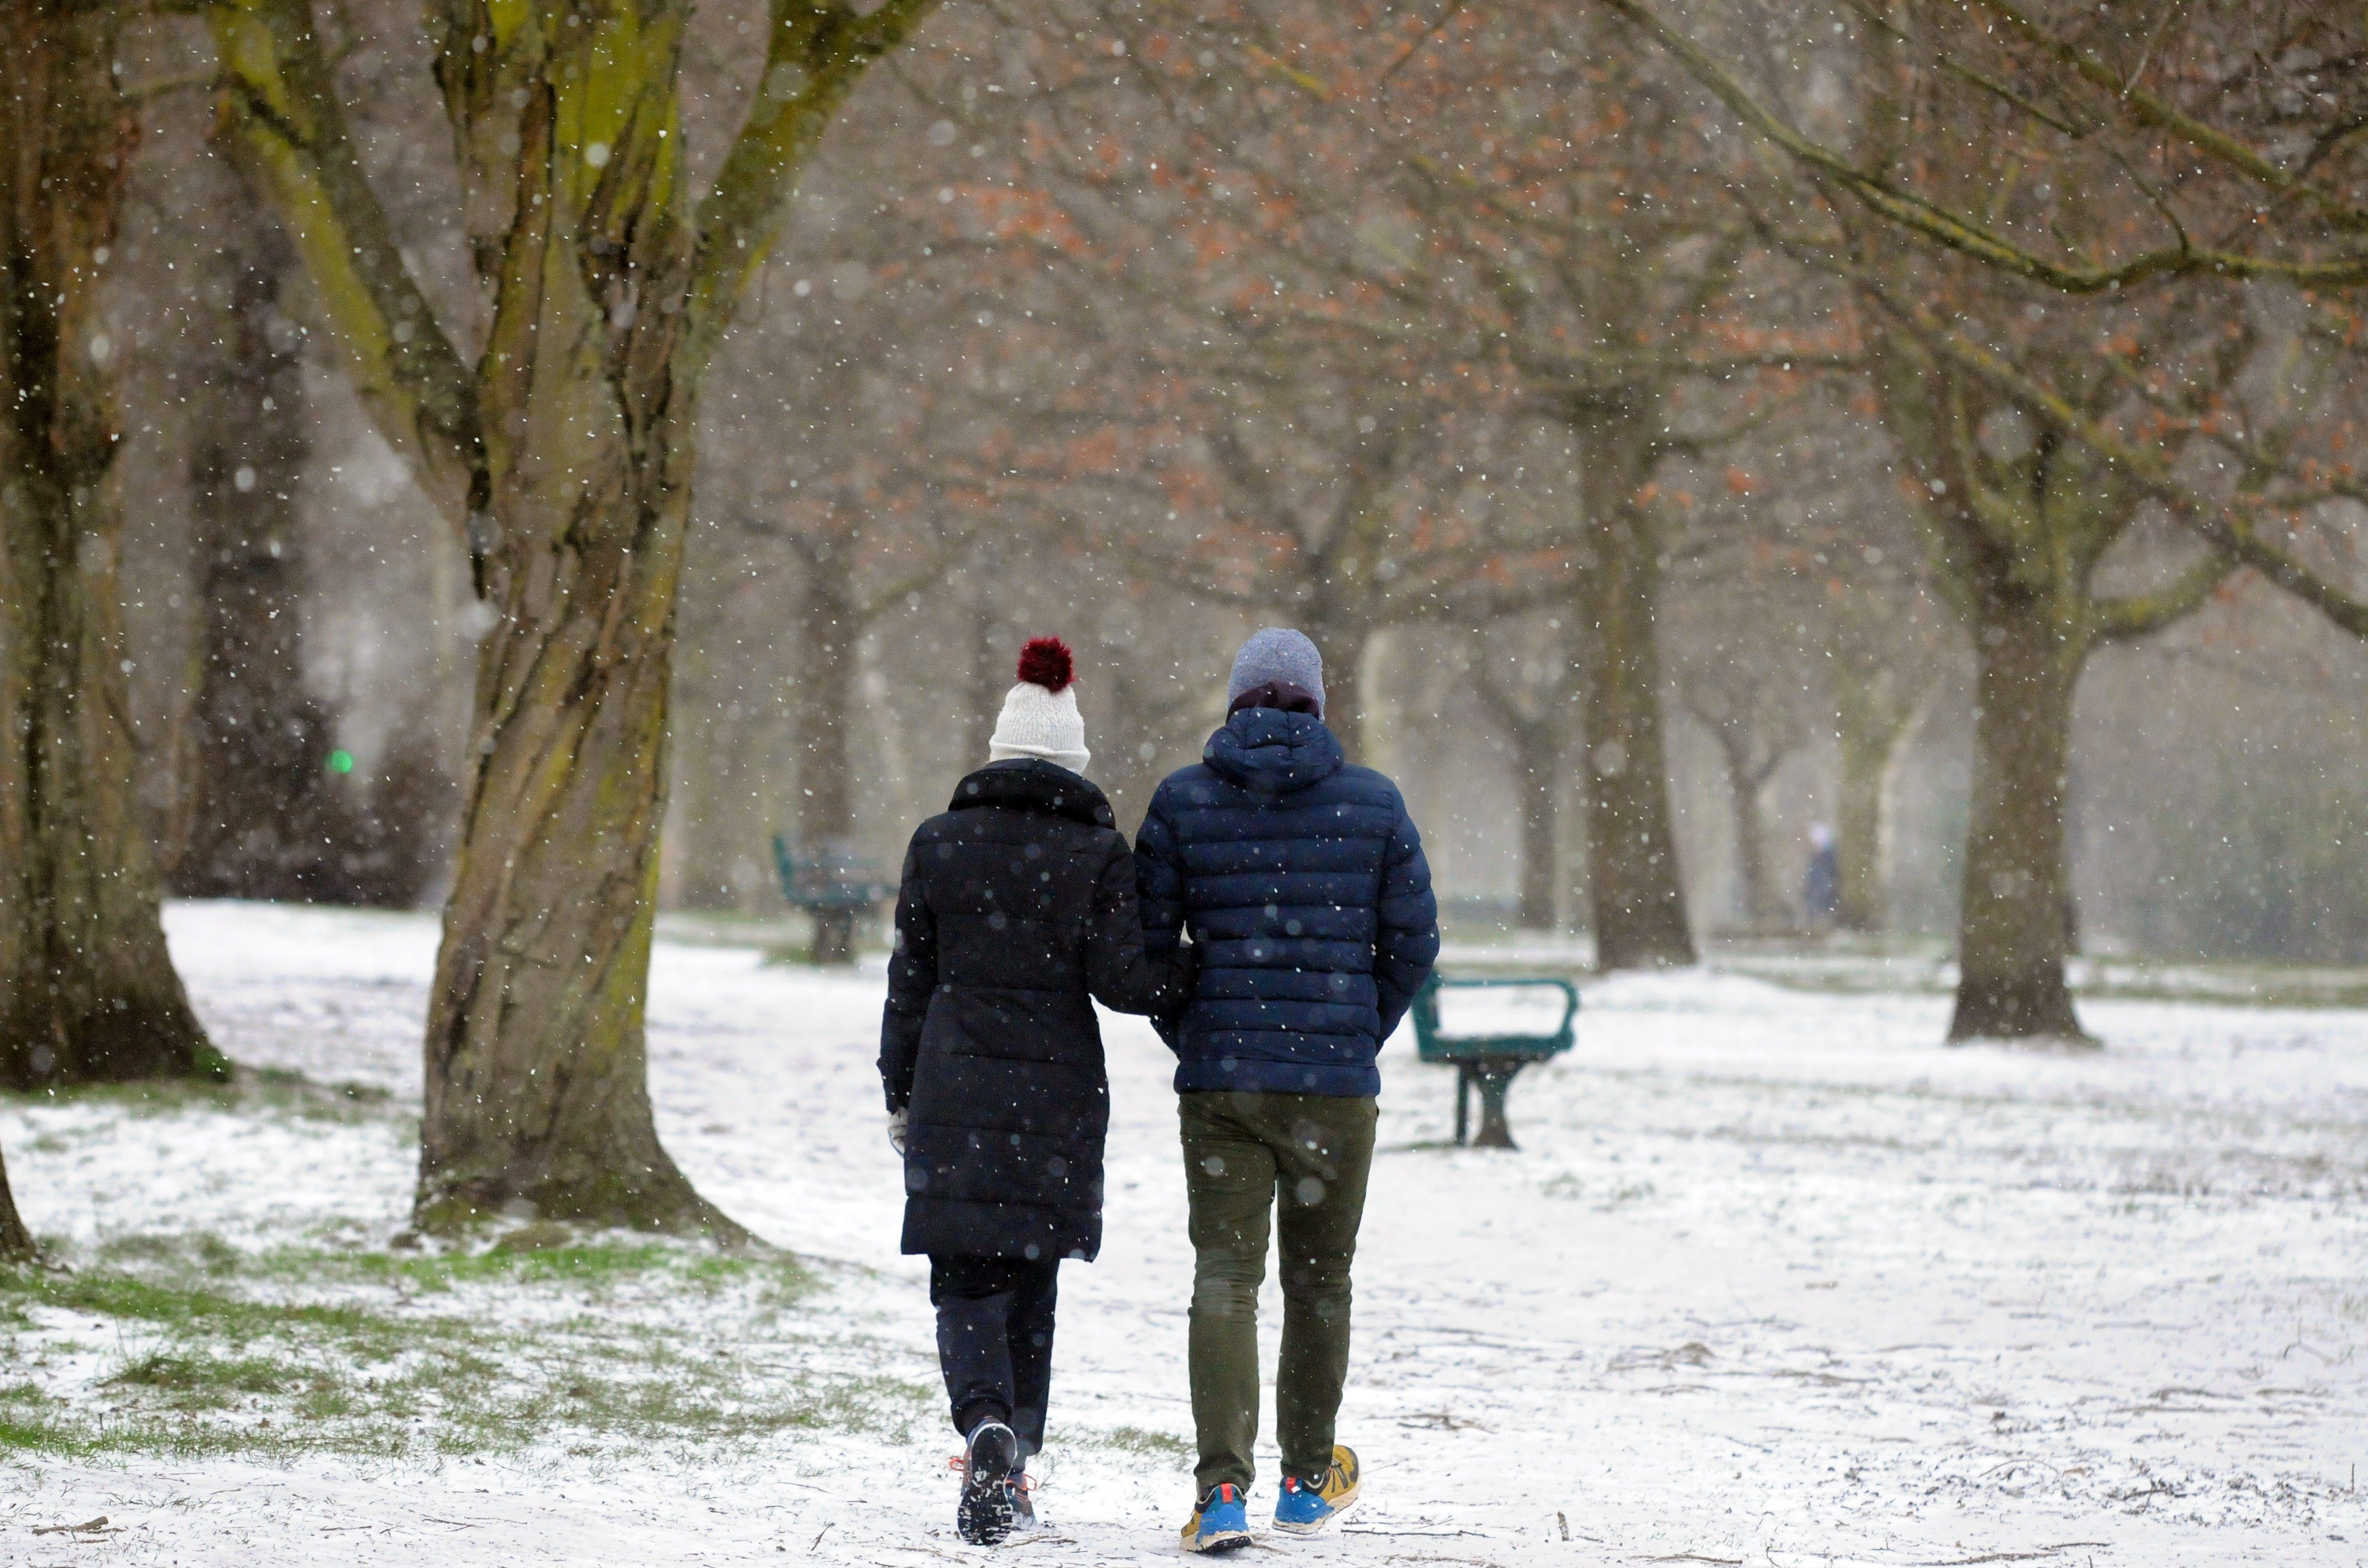 Snow has been dusting the ground in London